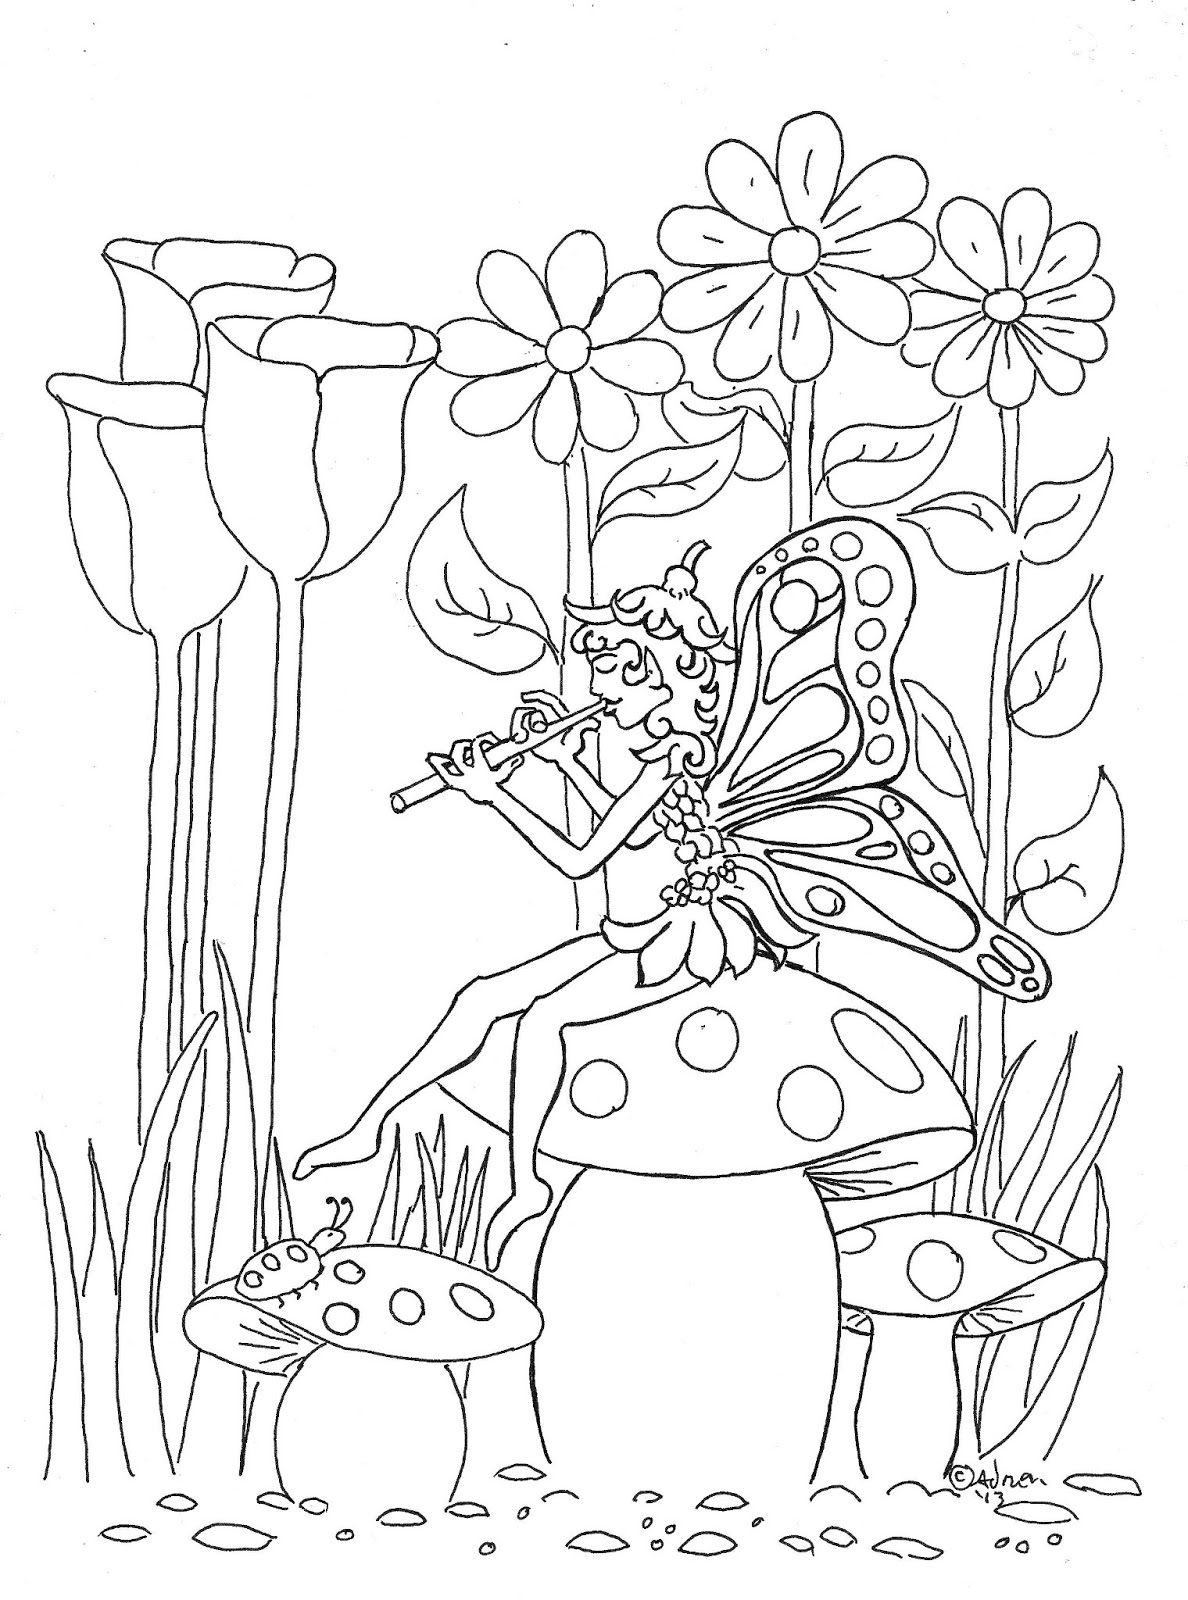 Coloring Pages for Kids by Mr. Adron: Pixie Fairy Print ...